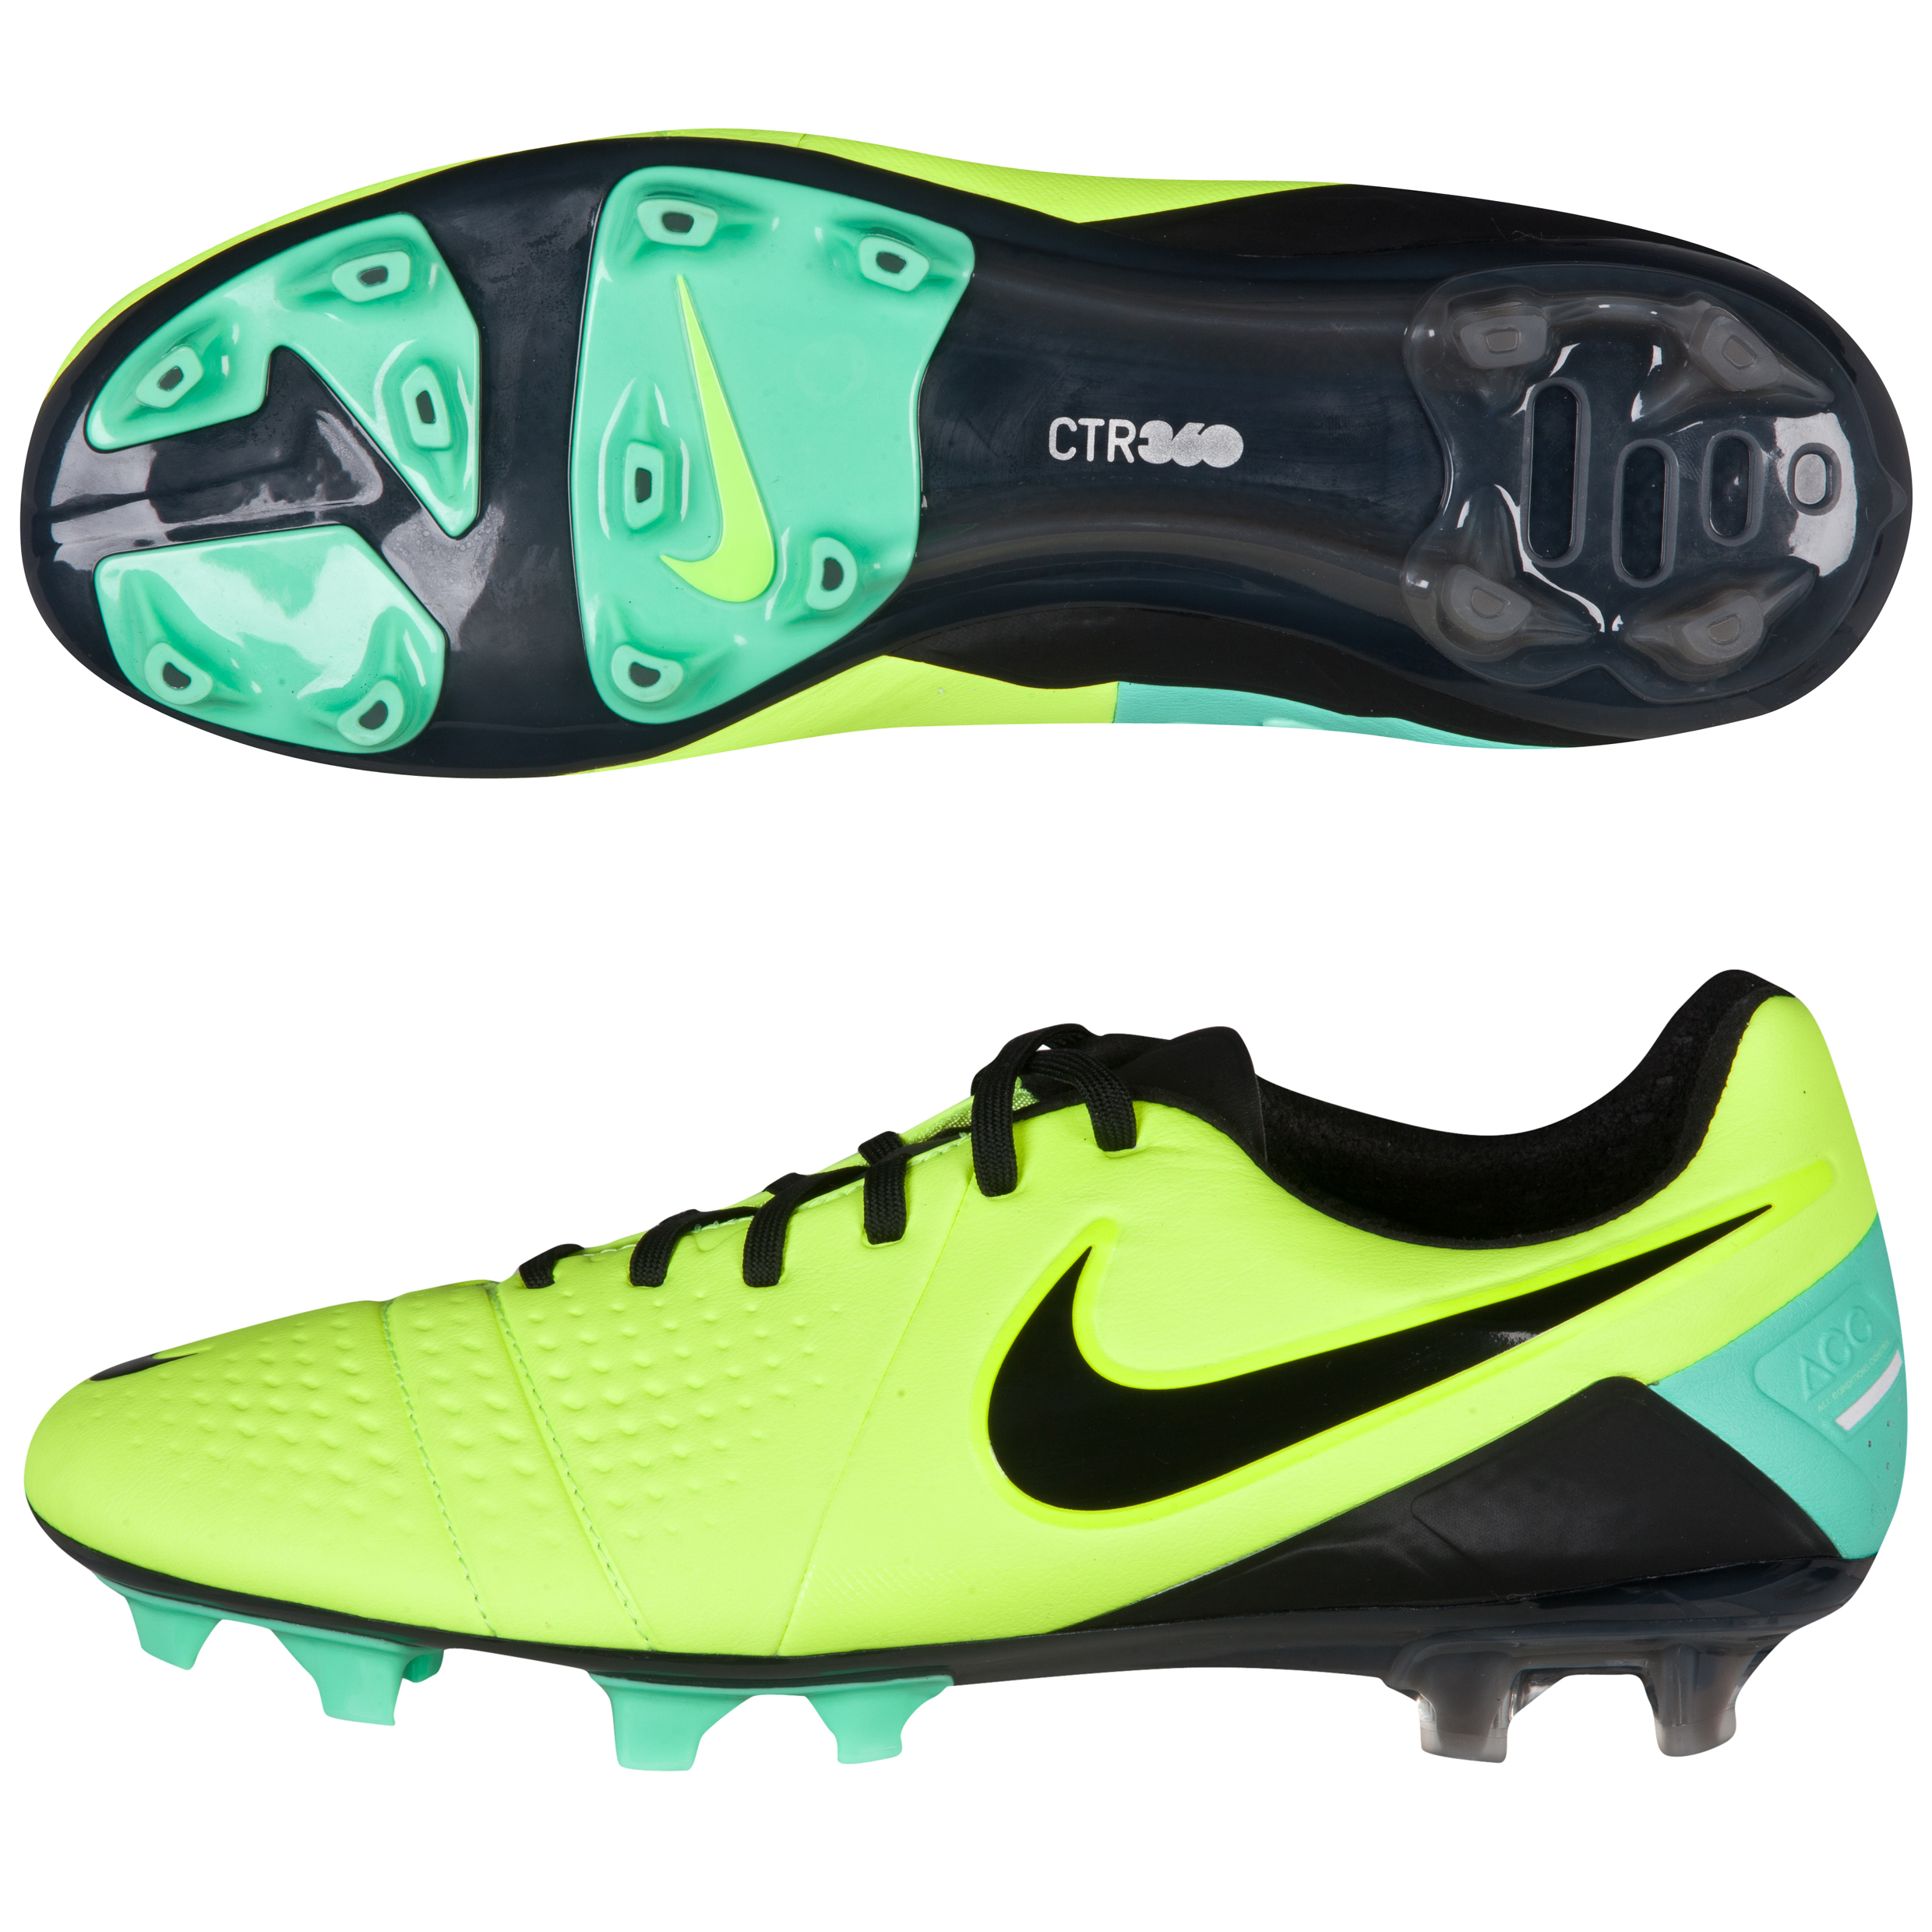 Nike CTR360 Maestri III Firm Ground Football Boots Yellow